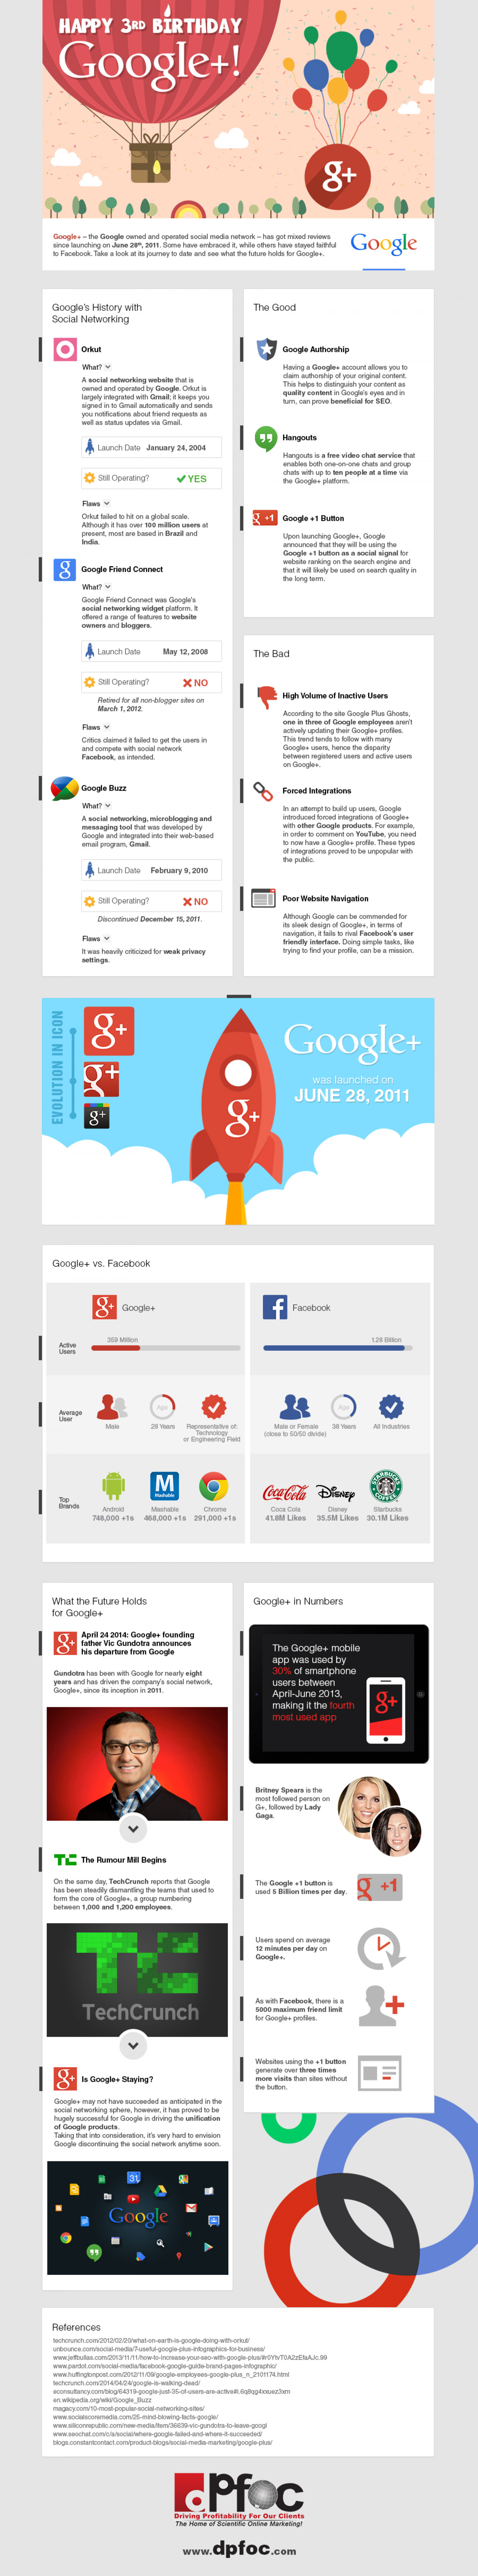 Happy 3rd Birthday Google+ Infographic